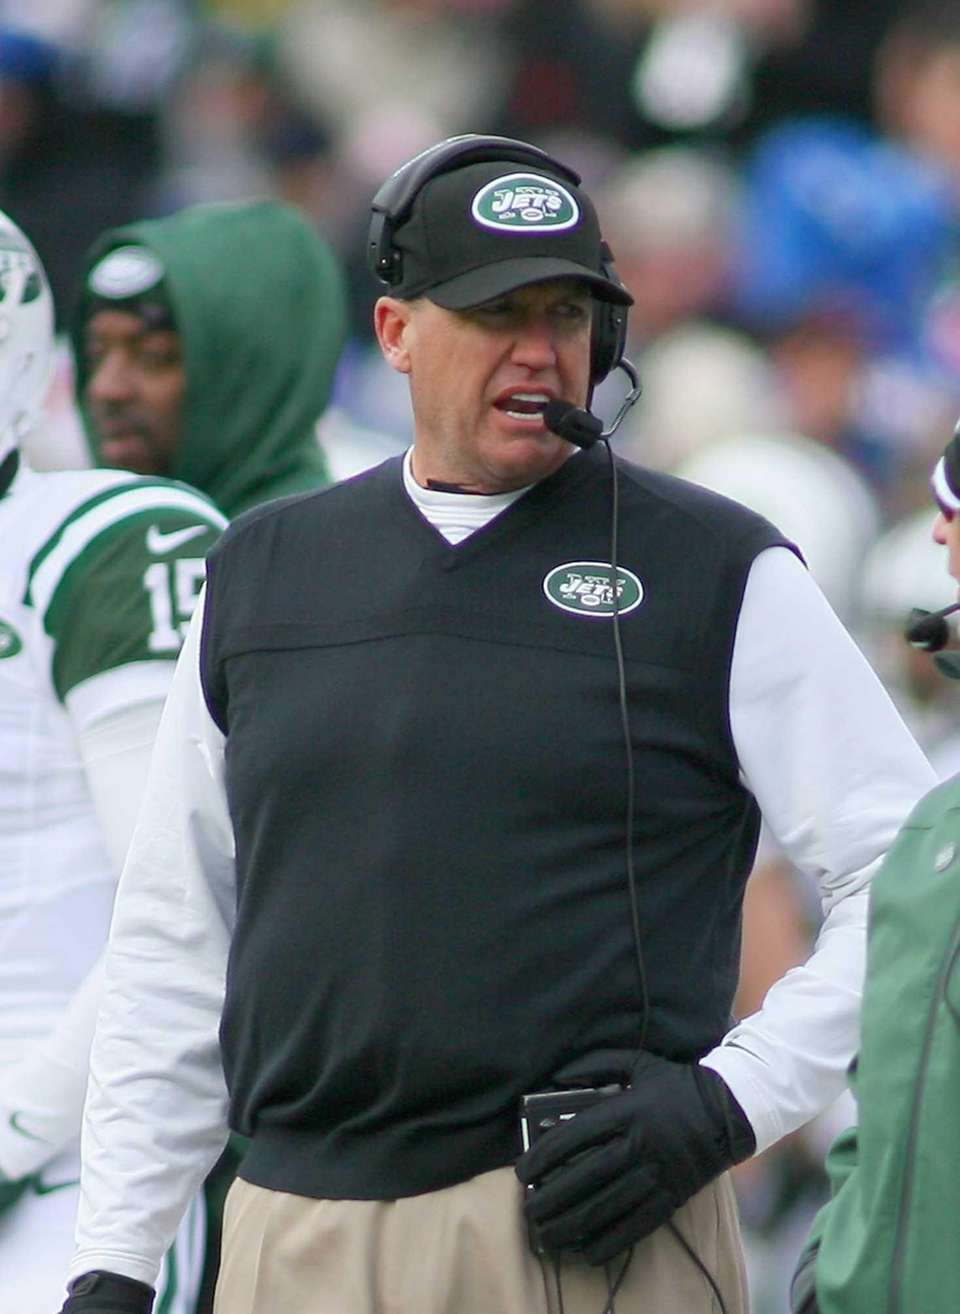 Head coach Rex Ryan of the Jets stands